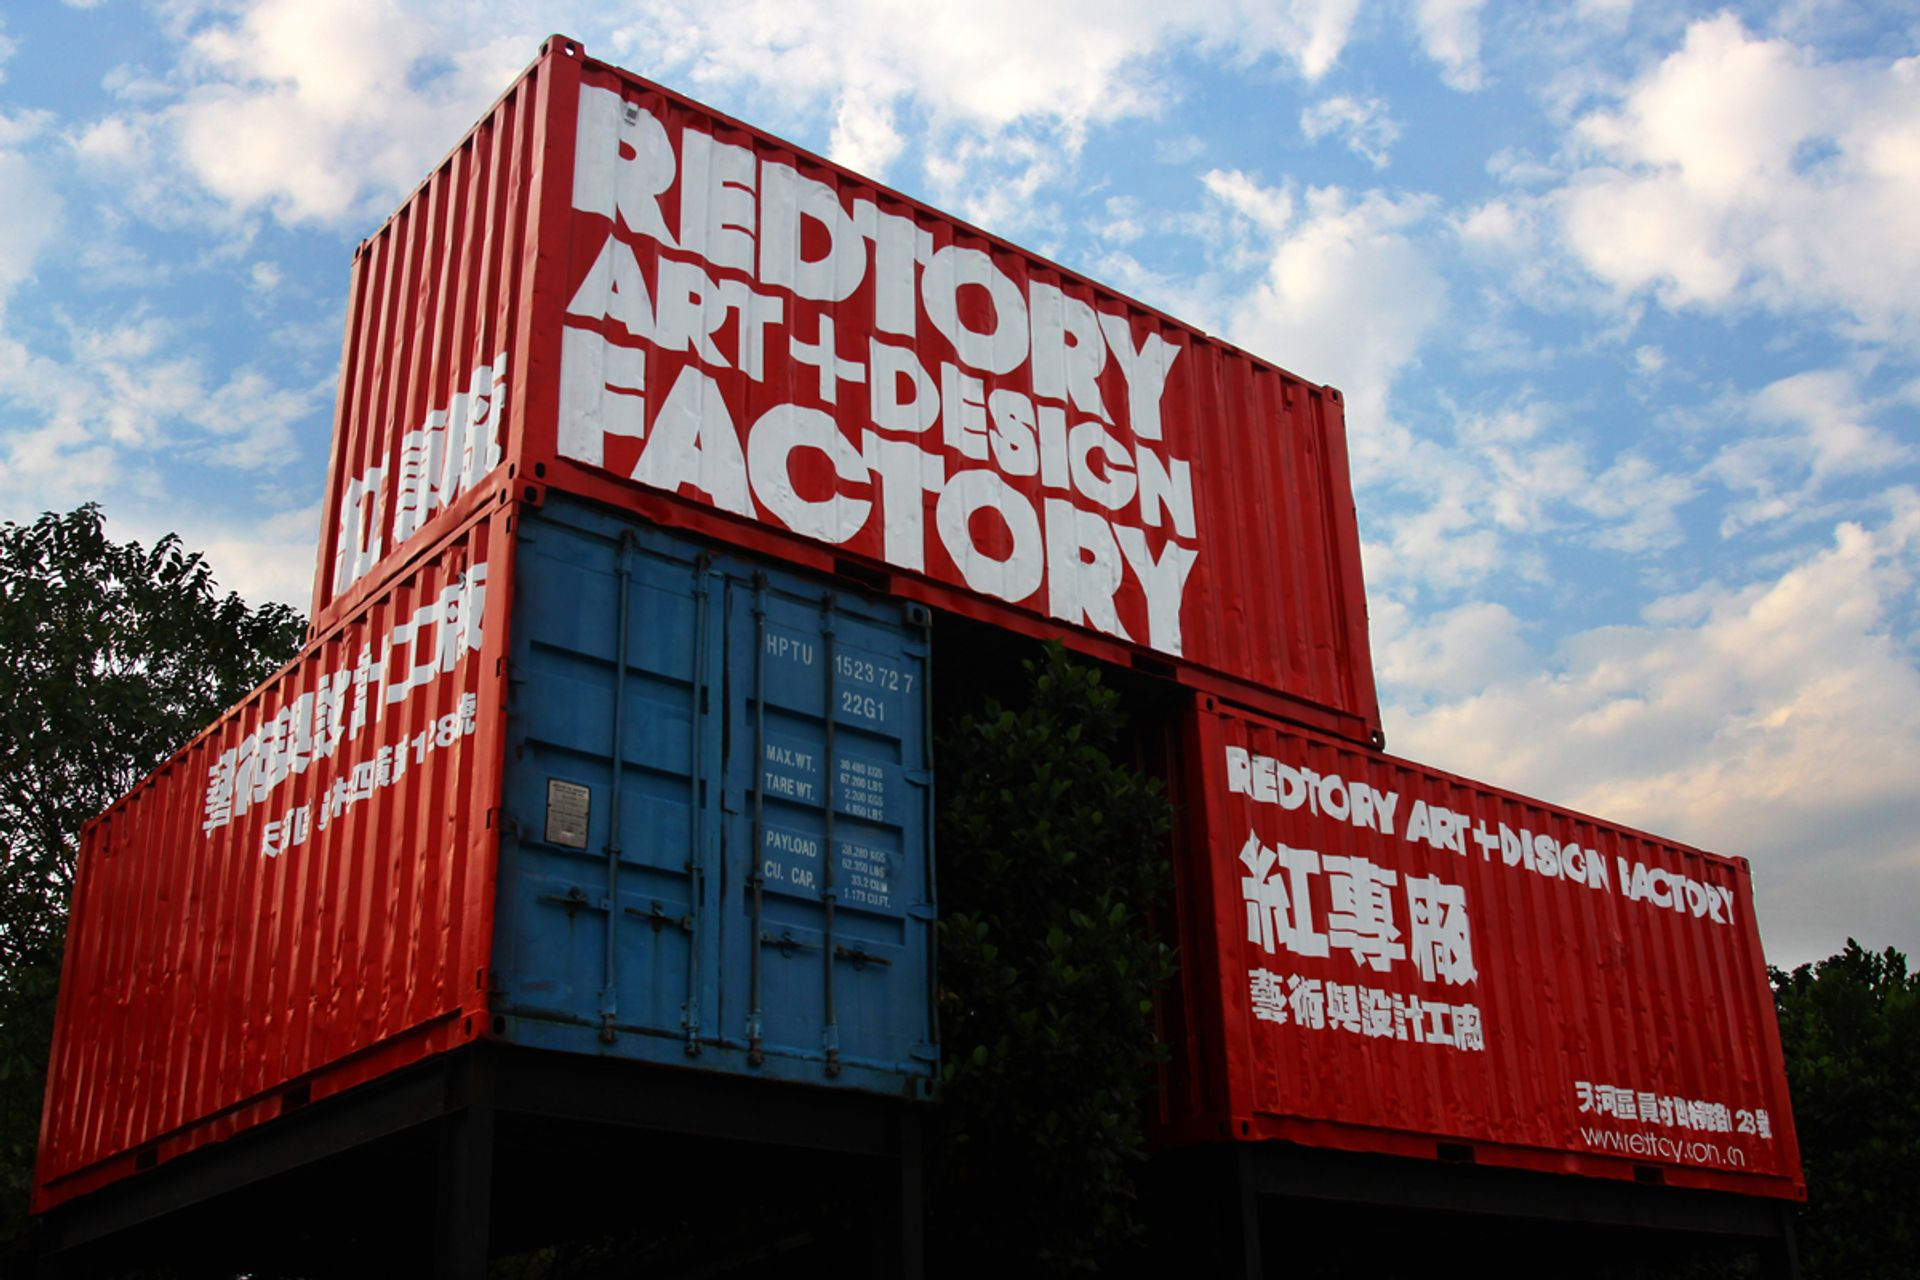 The museum and the surrounding Redtory arts district occupied a Constructivist-style 1950s factory compound for the past decade